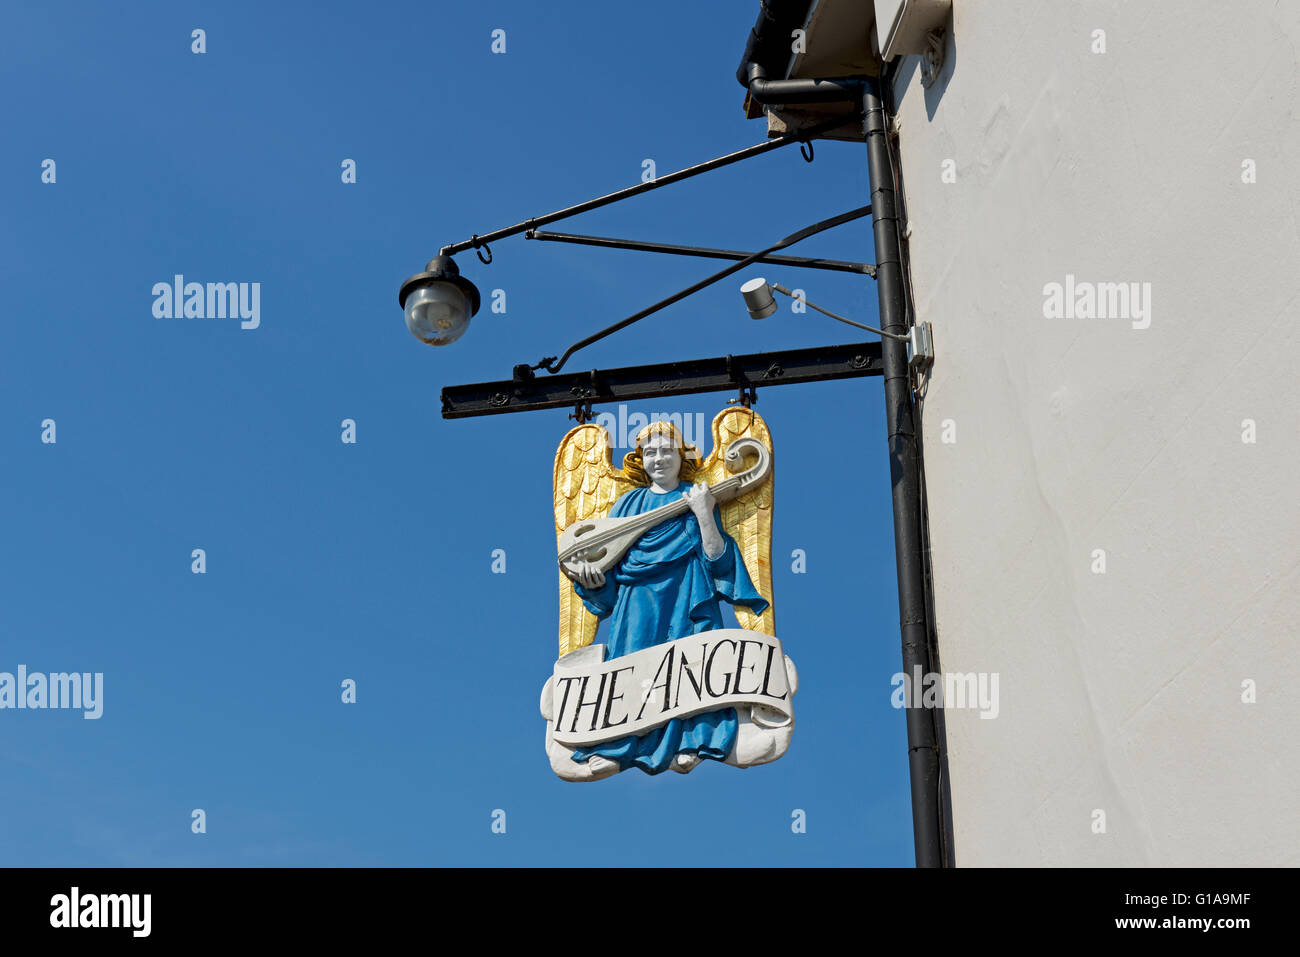 Pub sign of the Angel Hotel in the village of Lavenham, Suffolk, England UK - Stock Image